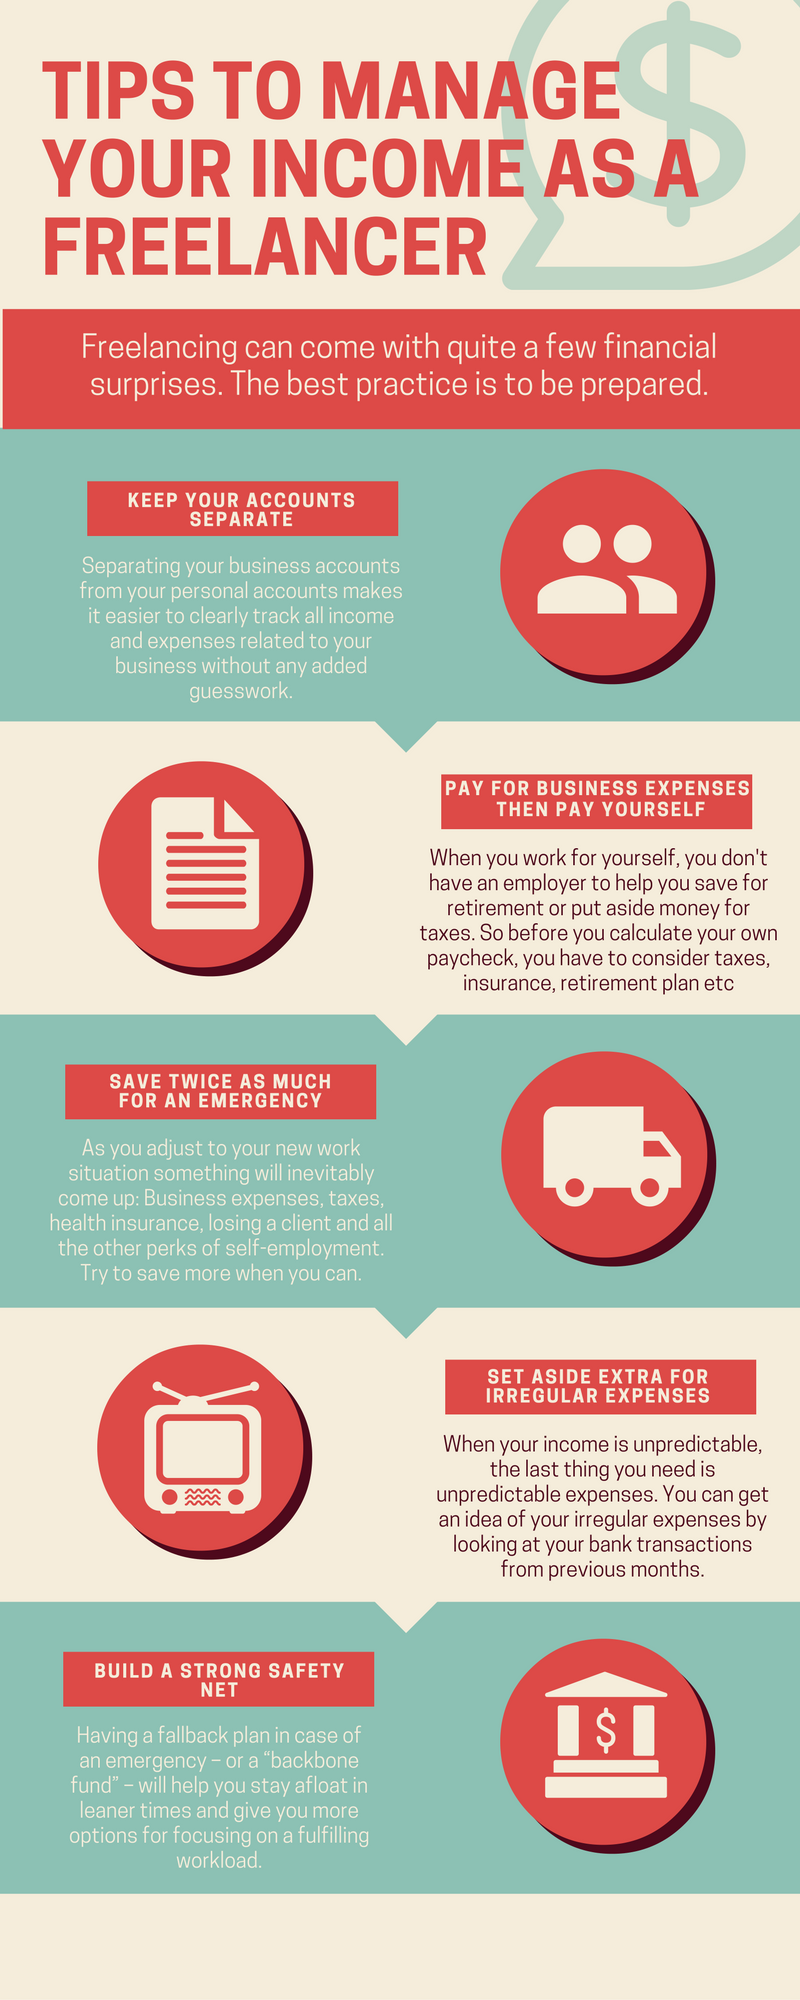 Tips to Manage Your Income as a Freelancer